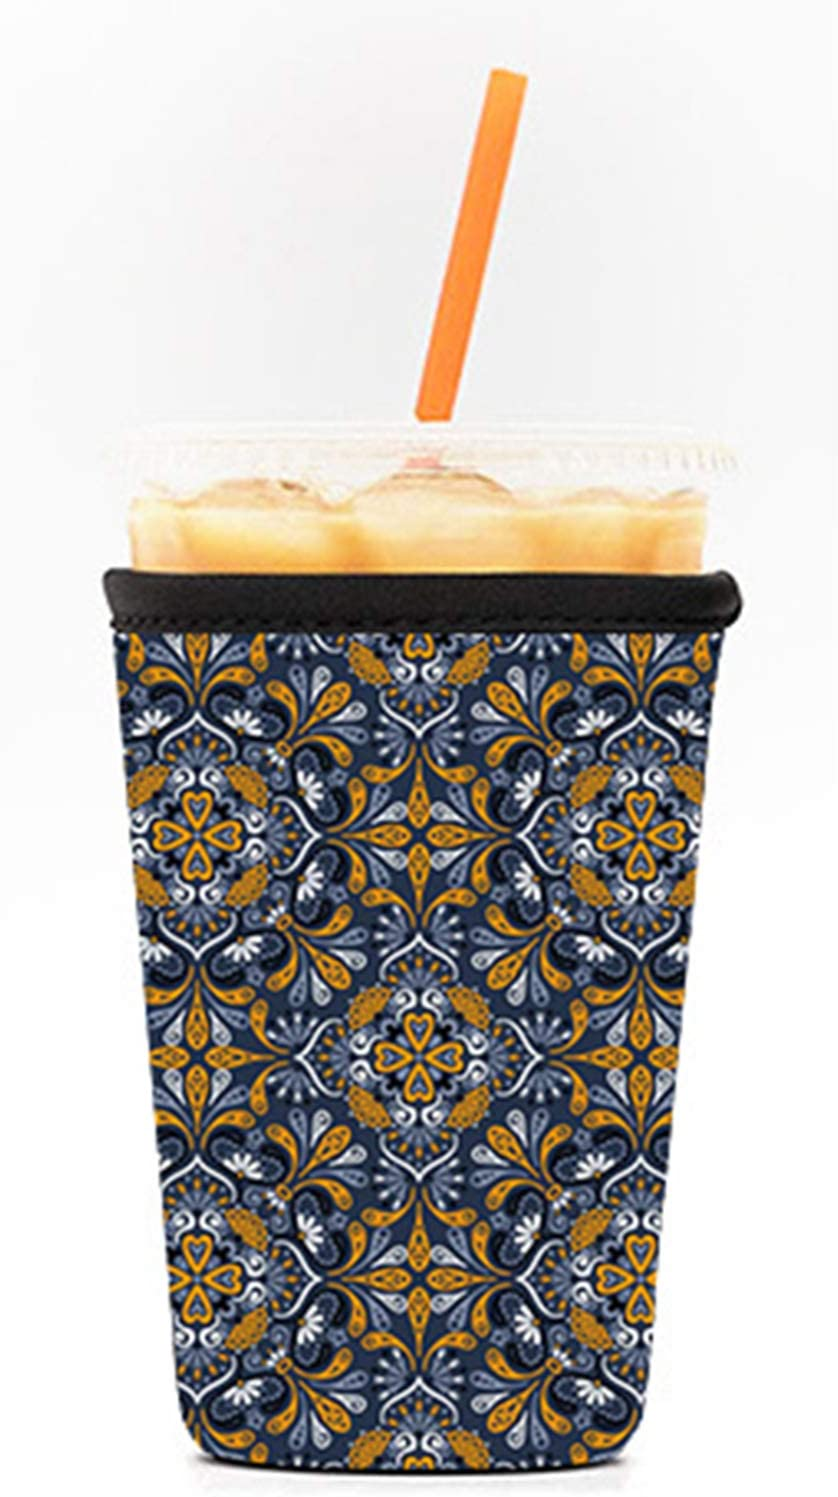 WILSLAT Reusable Iced Coffee Cup Insulator Sleeve for Cold Beverages and Neoprene Holder for Starbucks Coffee, McDonalds, Dunkin Donuts